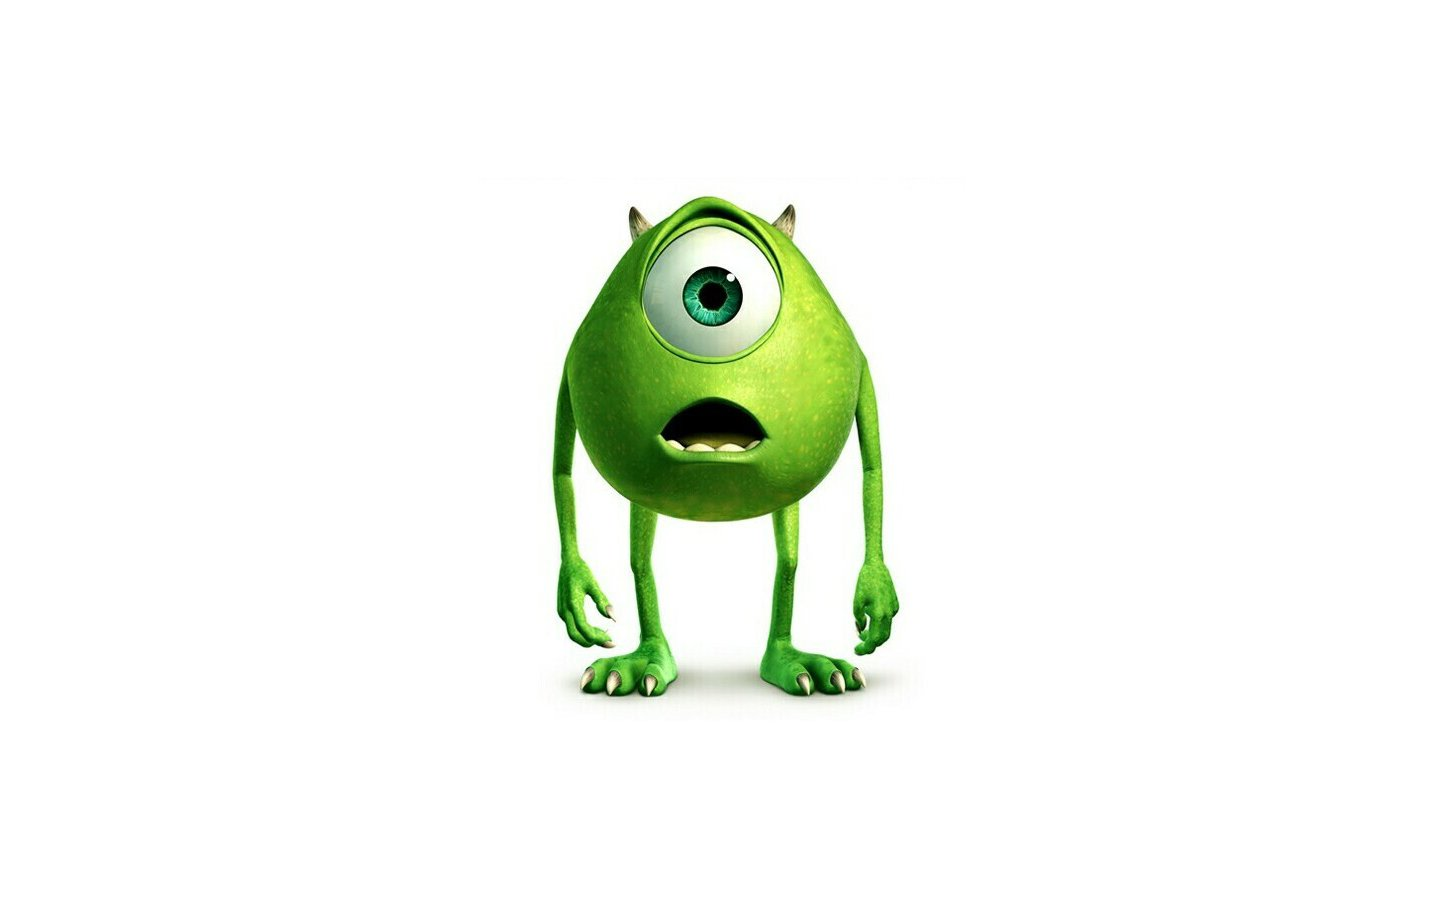 Monsters Inc Images Free